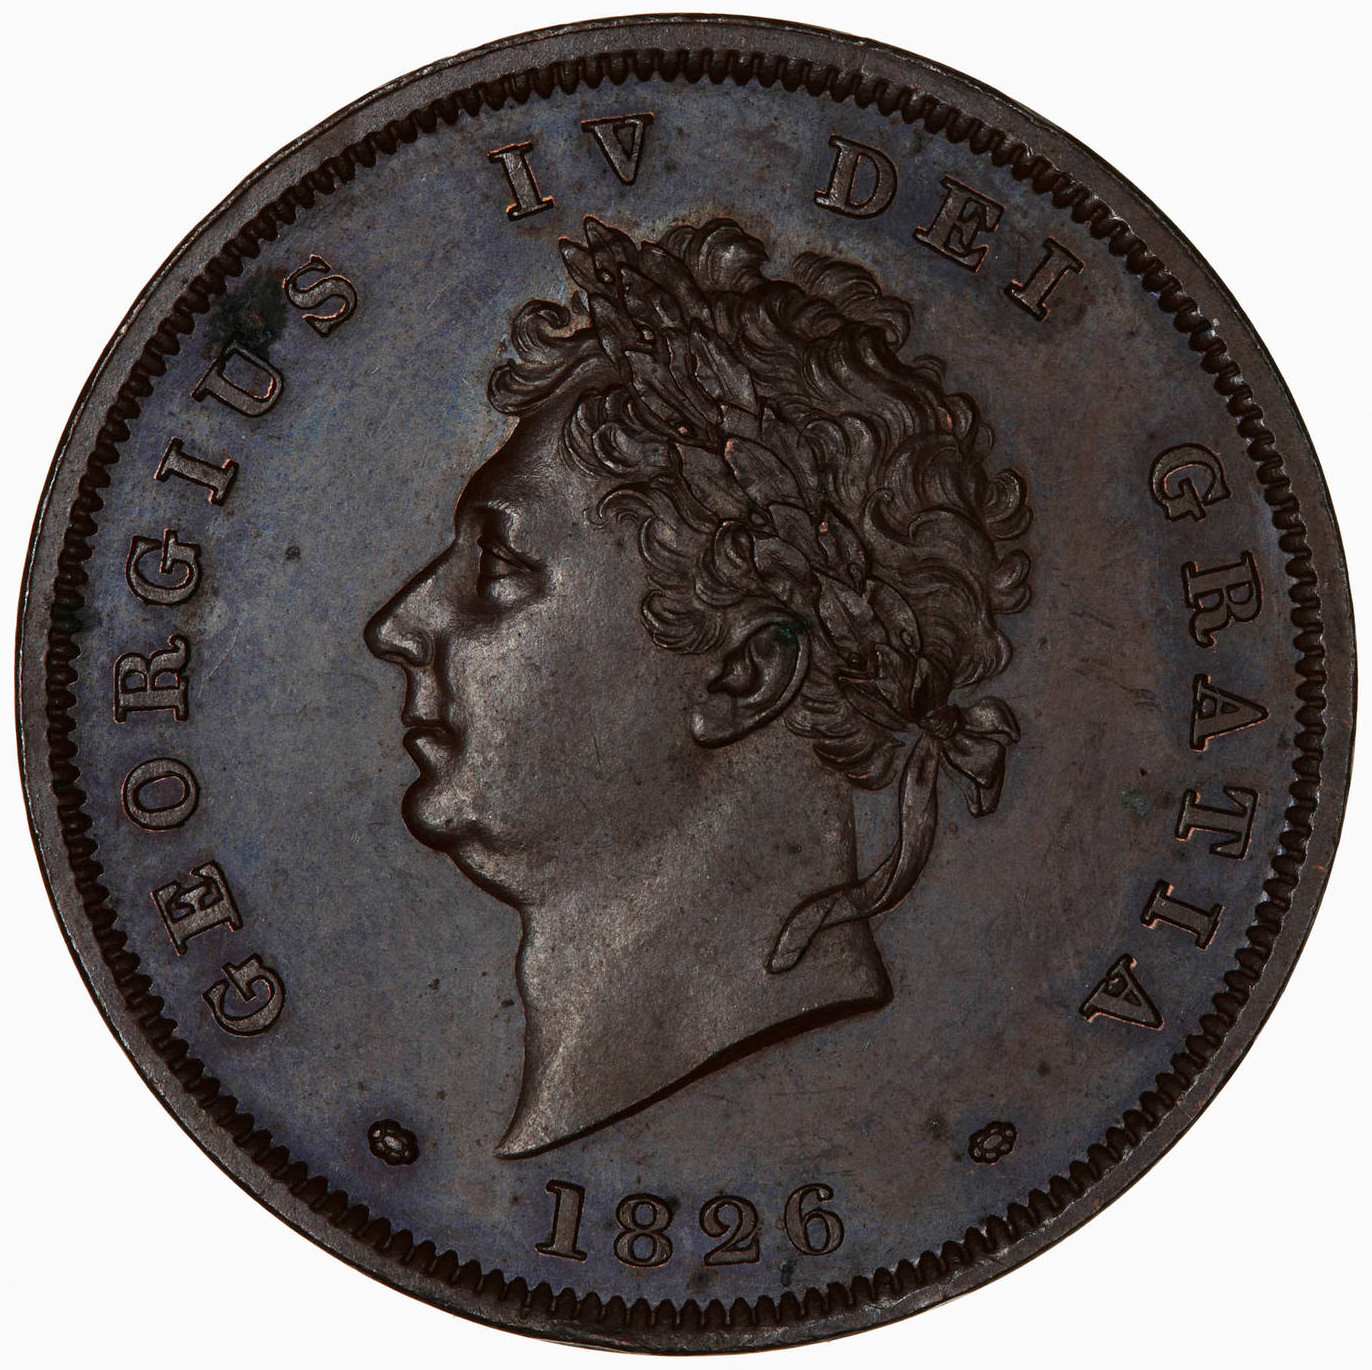 Penny (Pre-decimal): Photo Proof Coin - Penny, George IV, Great Britain, 1826